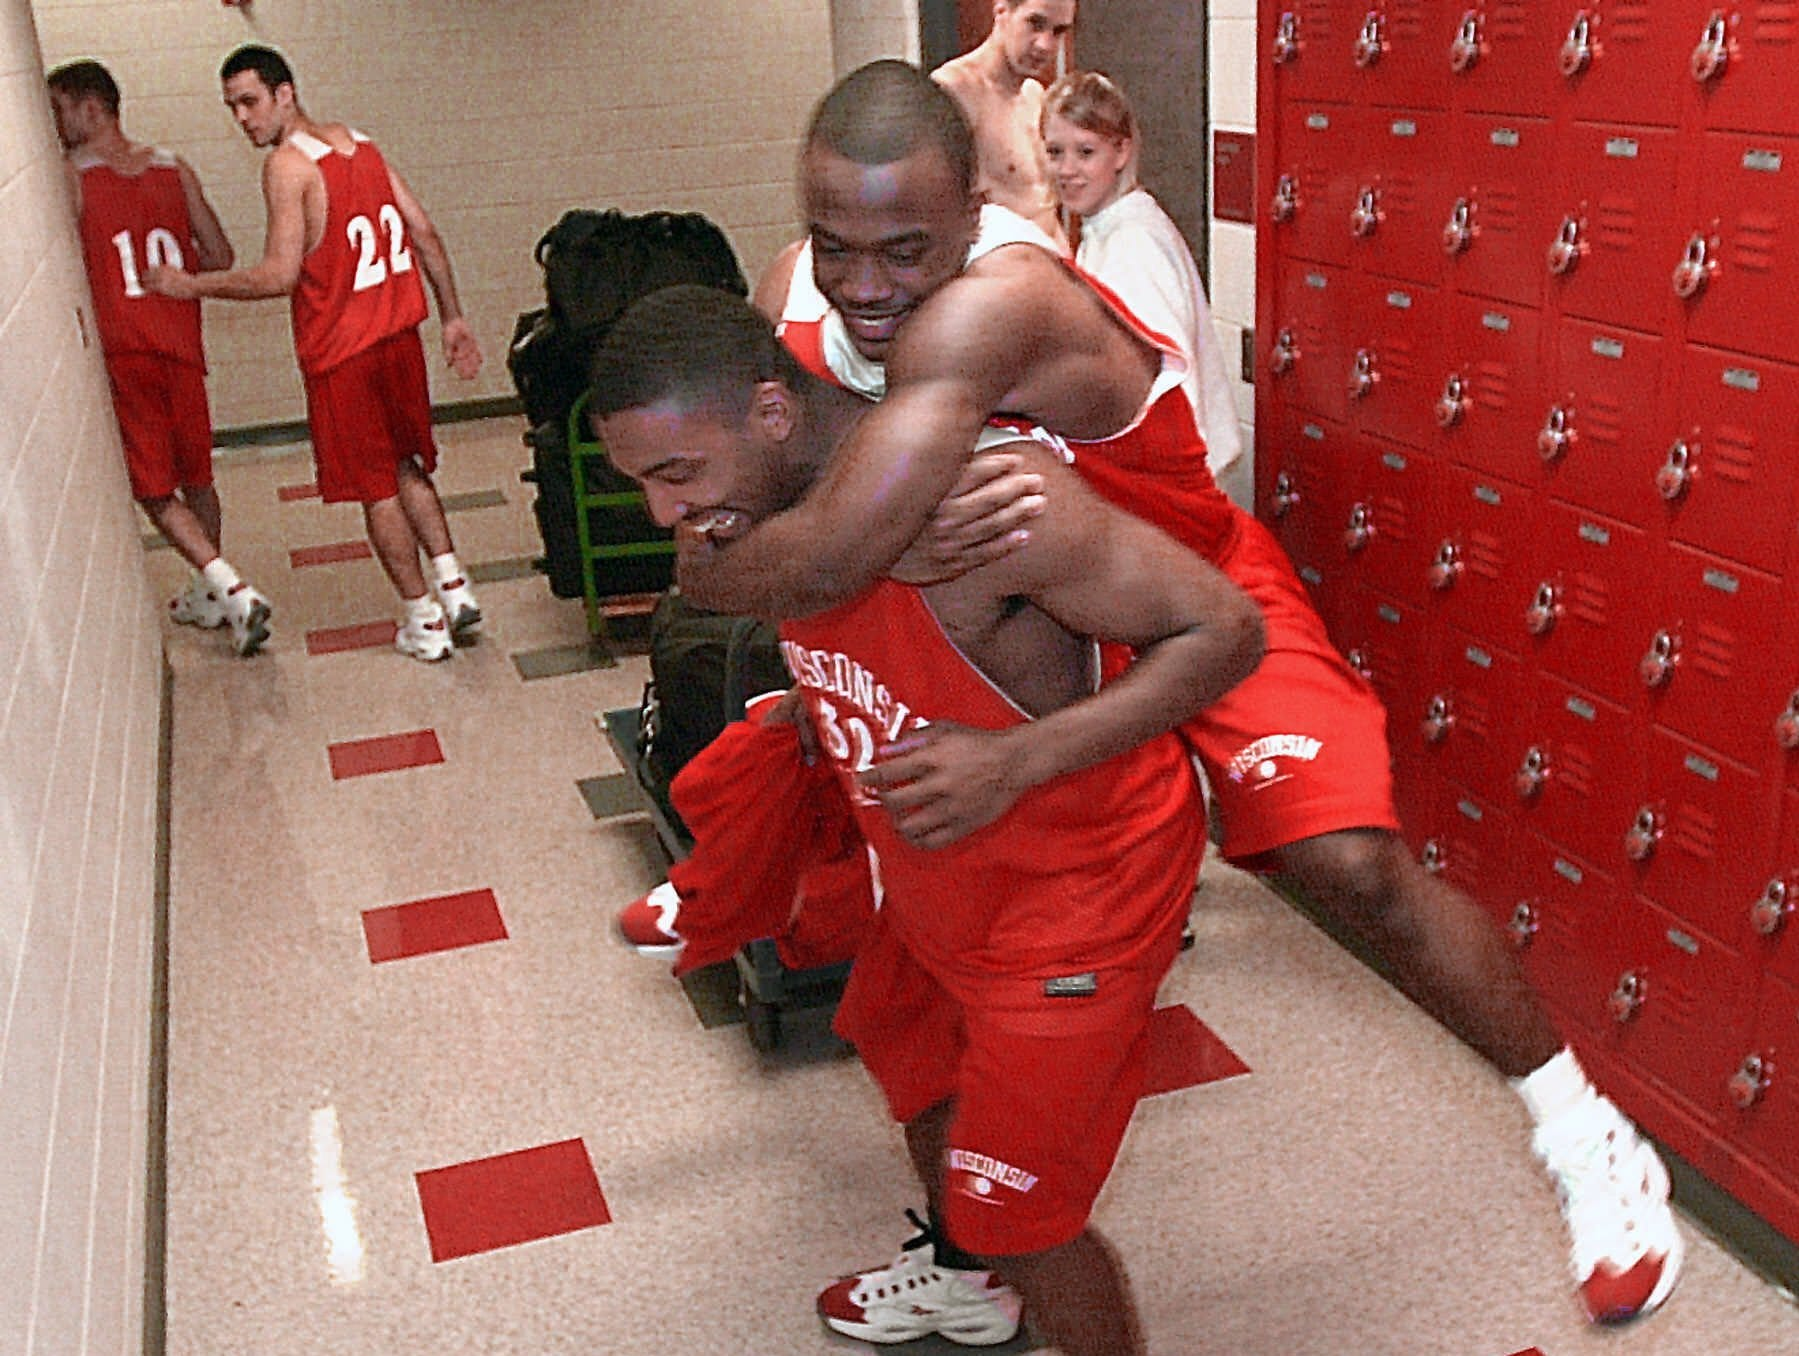 Wisconsin's Ray Boone (32) and Travon Davis have some fun in the hall after a practice Wednesday, March 29, 2000, in Madison, Wis. The team left for Indianapolis after practice, to play Michigan State in the semifinals of the NCAA Final Four.